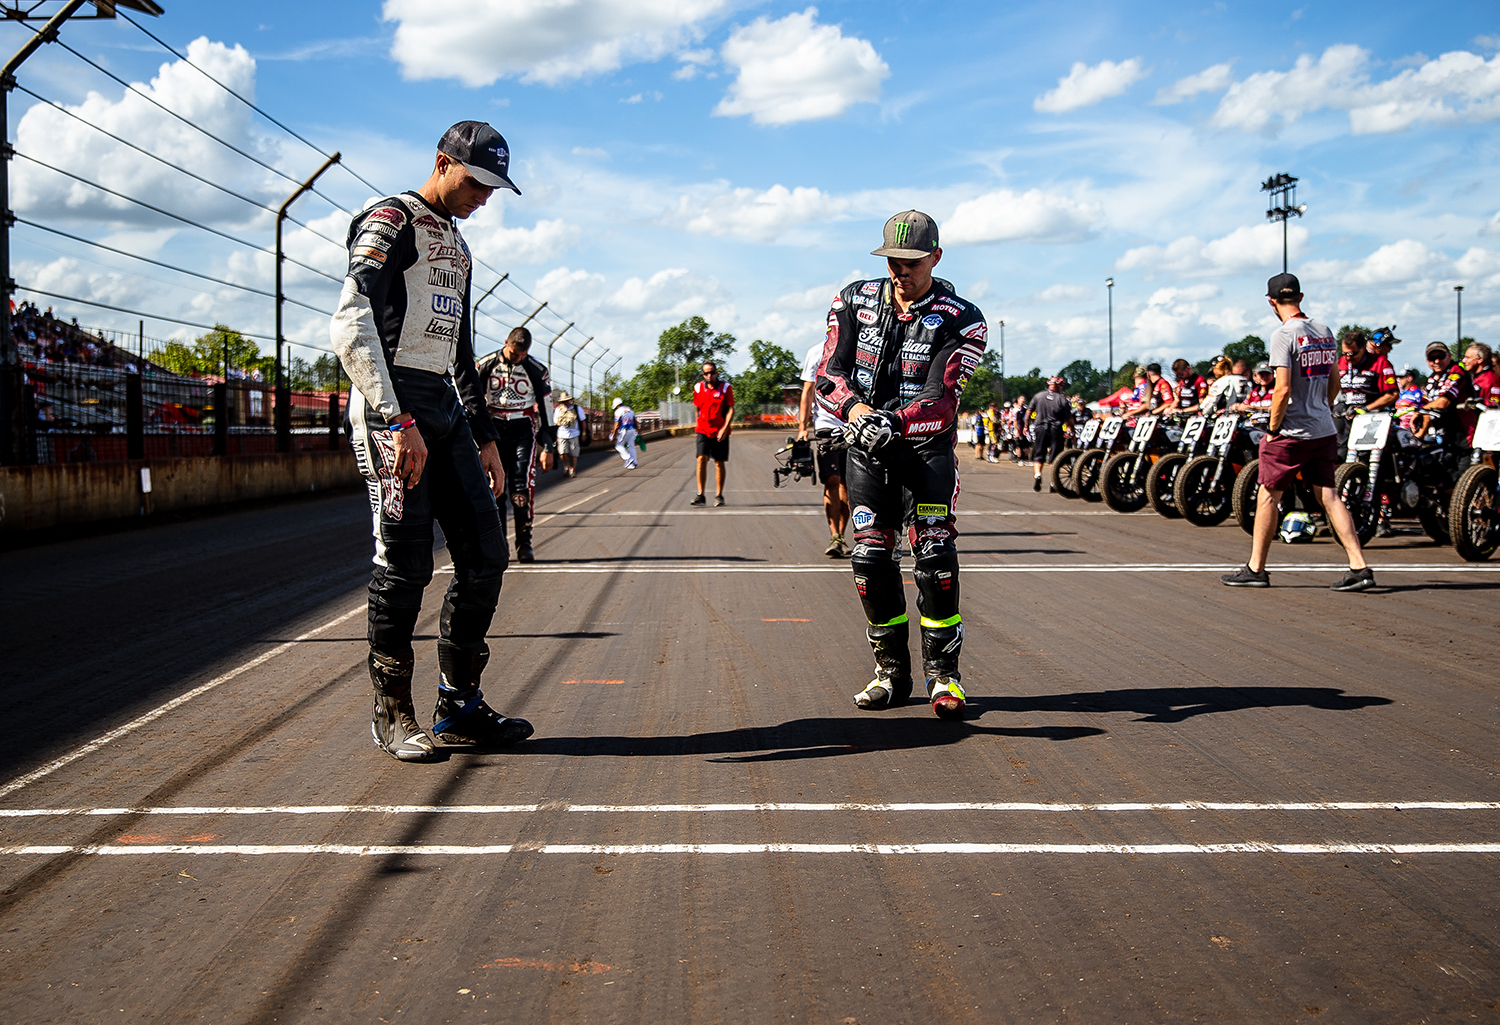 Briar Bauman, left, and Jared Mees, center, check out track conditions before picking out where they want to start for the American Flat Track Springfield Mile II at the Illinois State Fairgrounds, Sunday, Sept. 2, 2018, in Springfield, Ill. [Justin L. Fowler/The State Journal-Register]